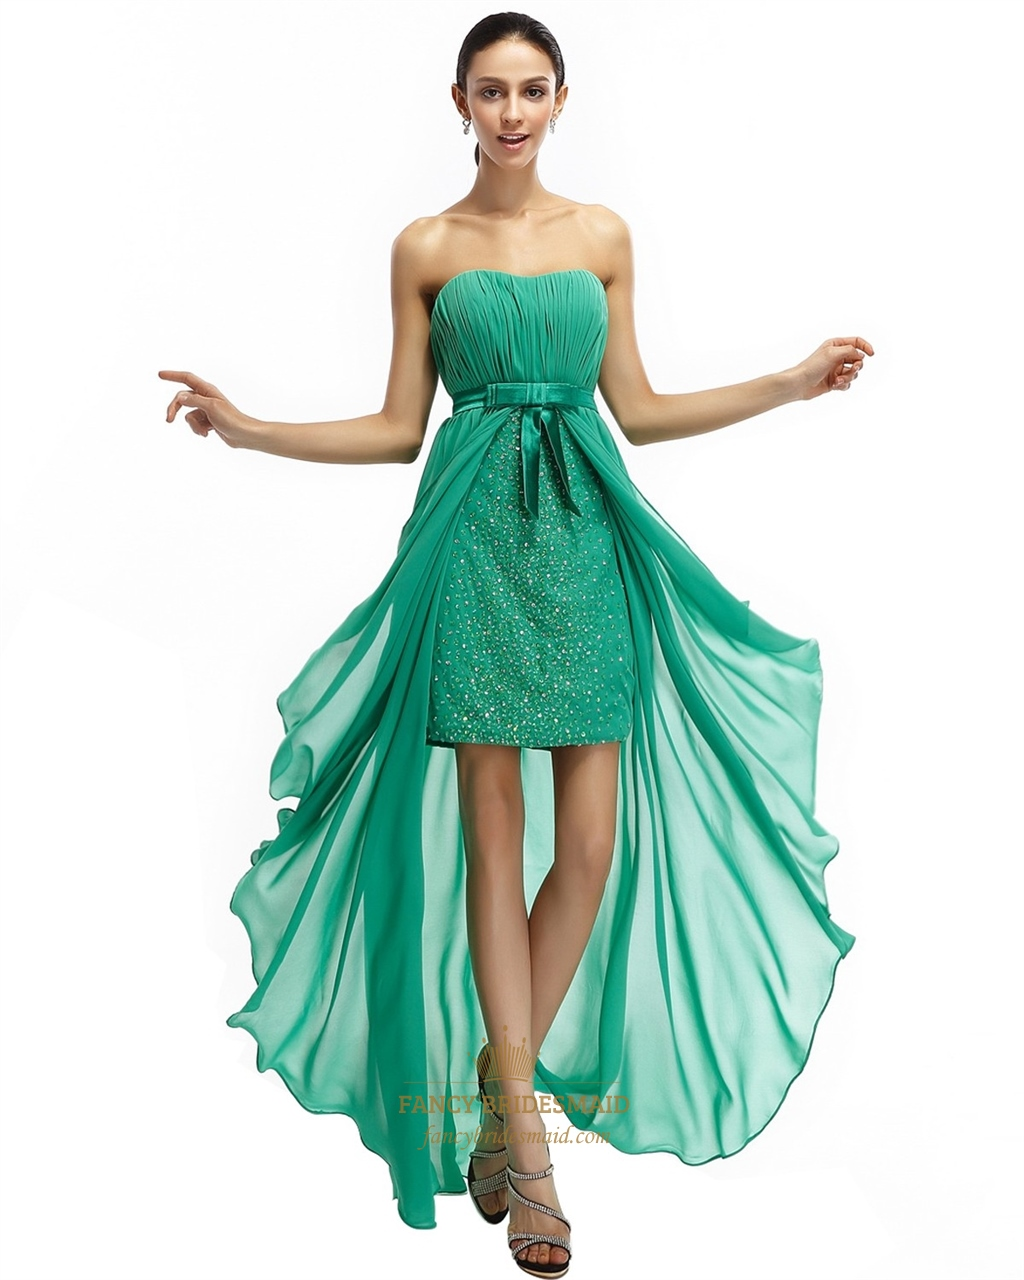 Green Strapless Short Dress Chiffon Prom With Floor Length Sheer ...